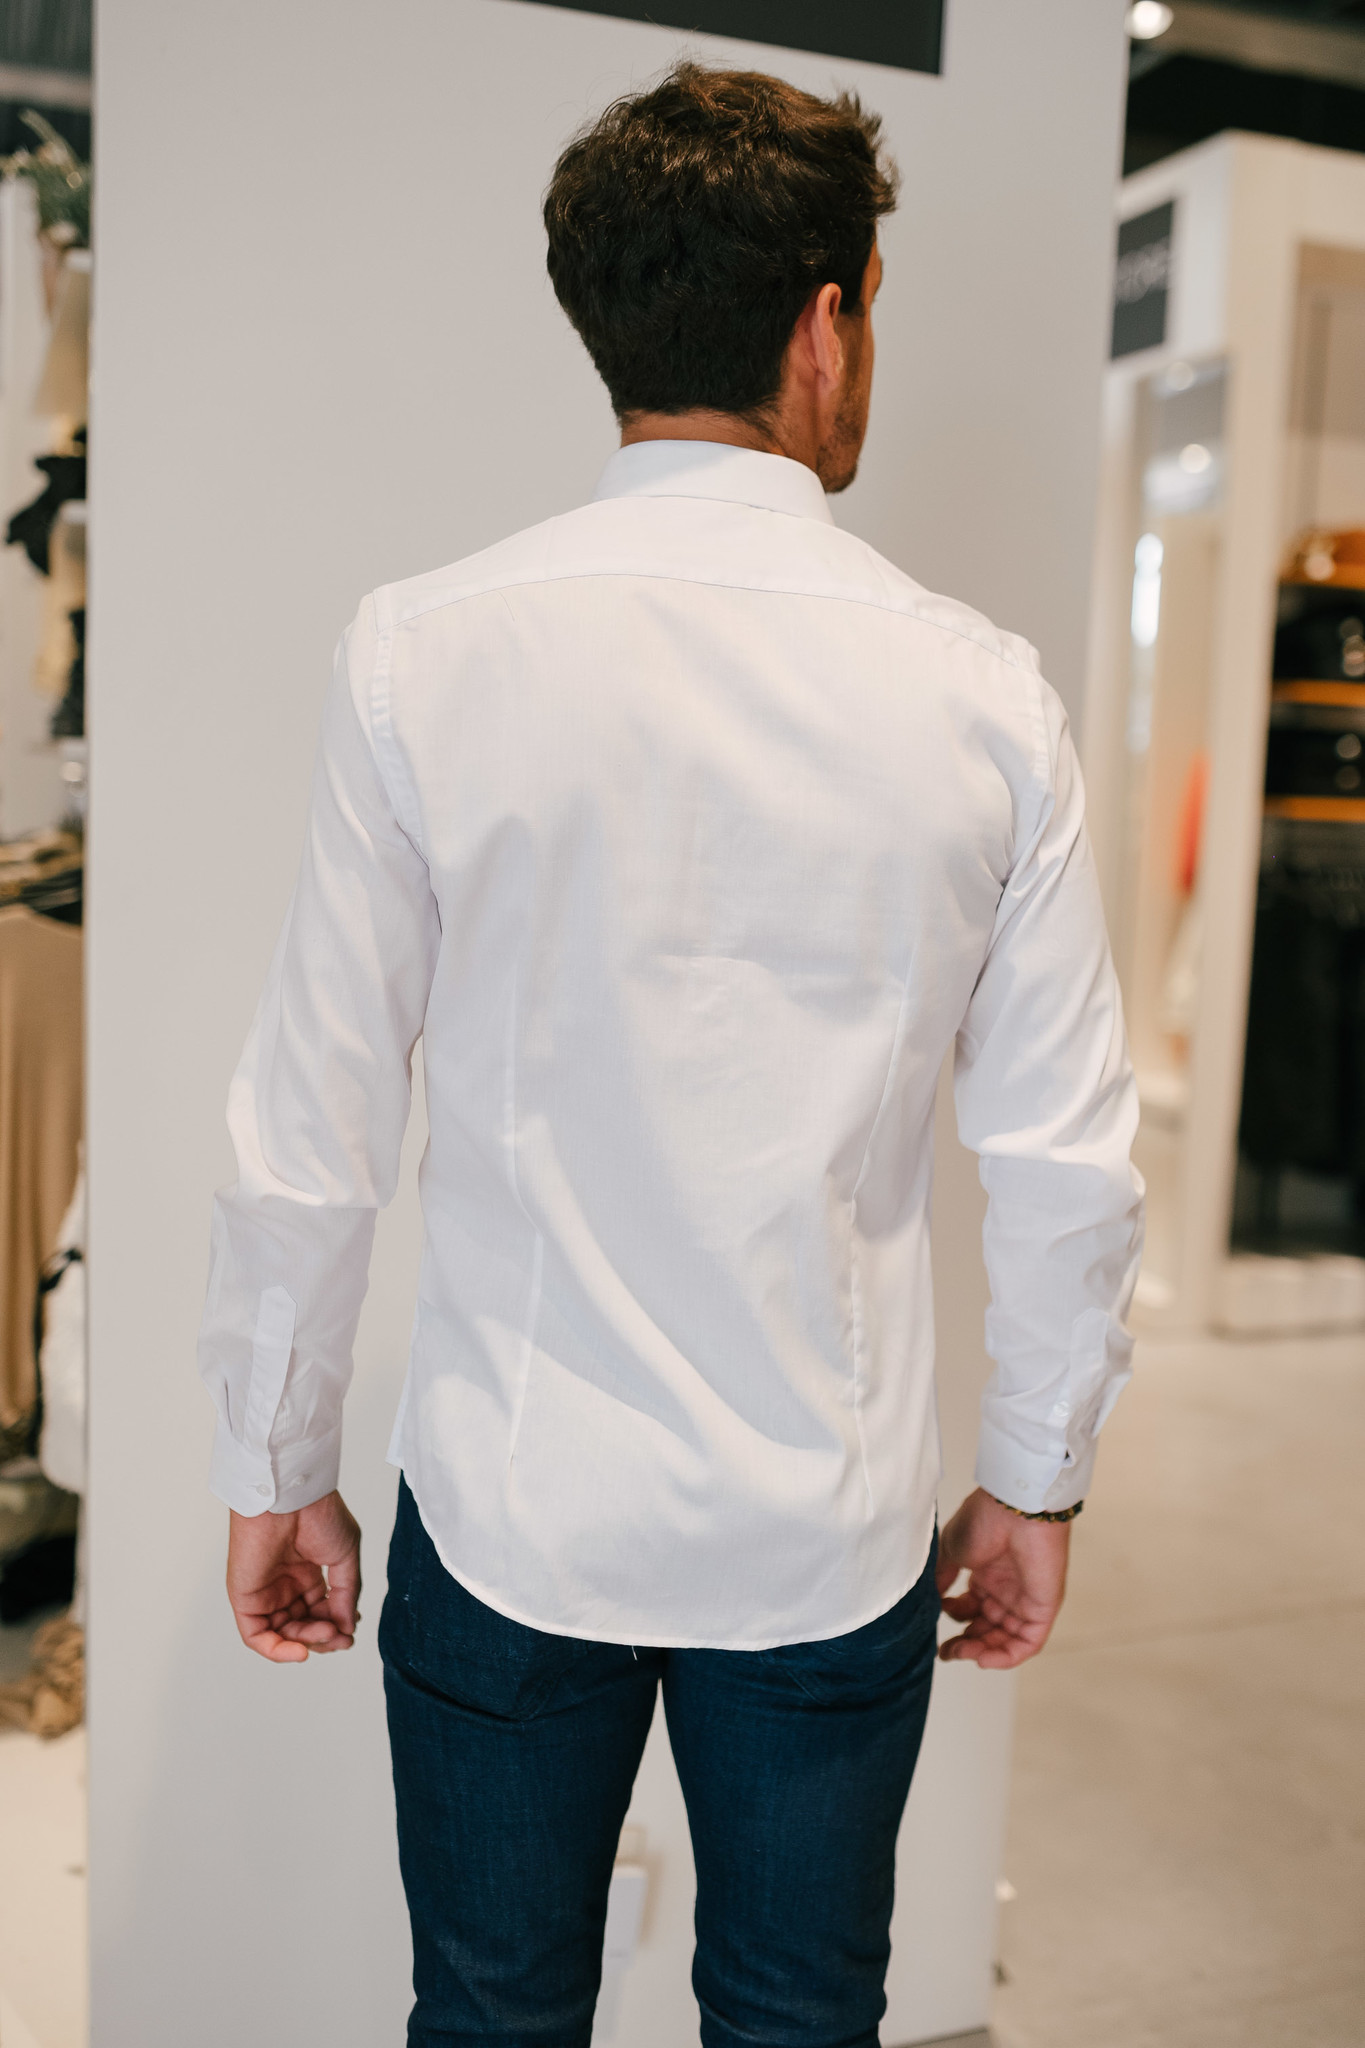 NICK chemise blanche-3